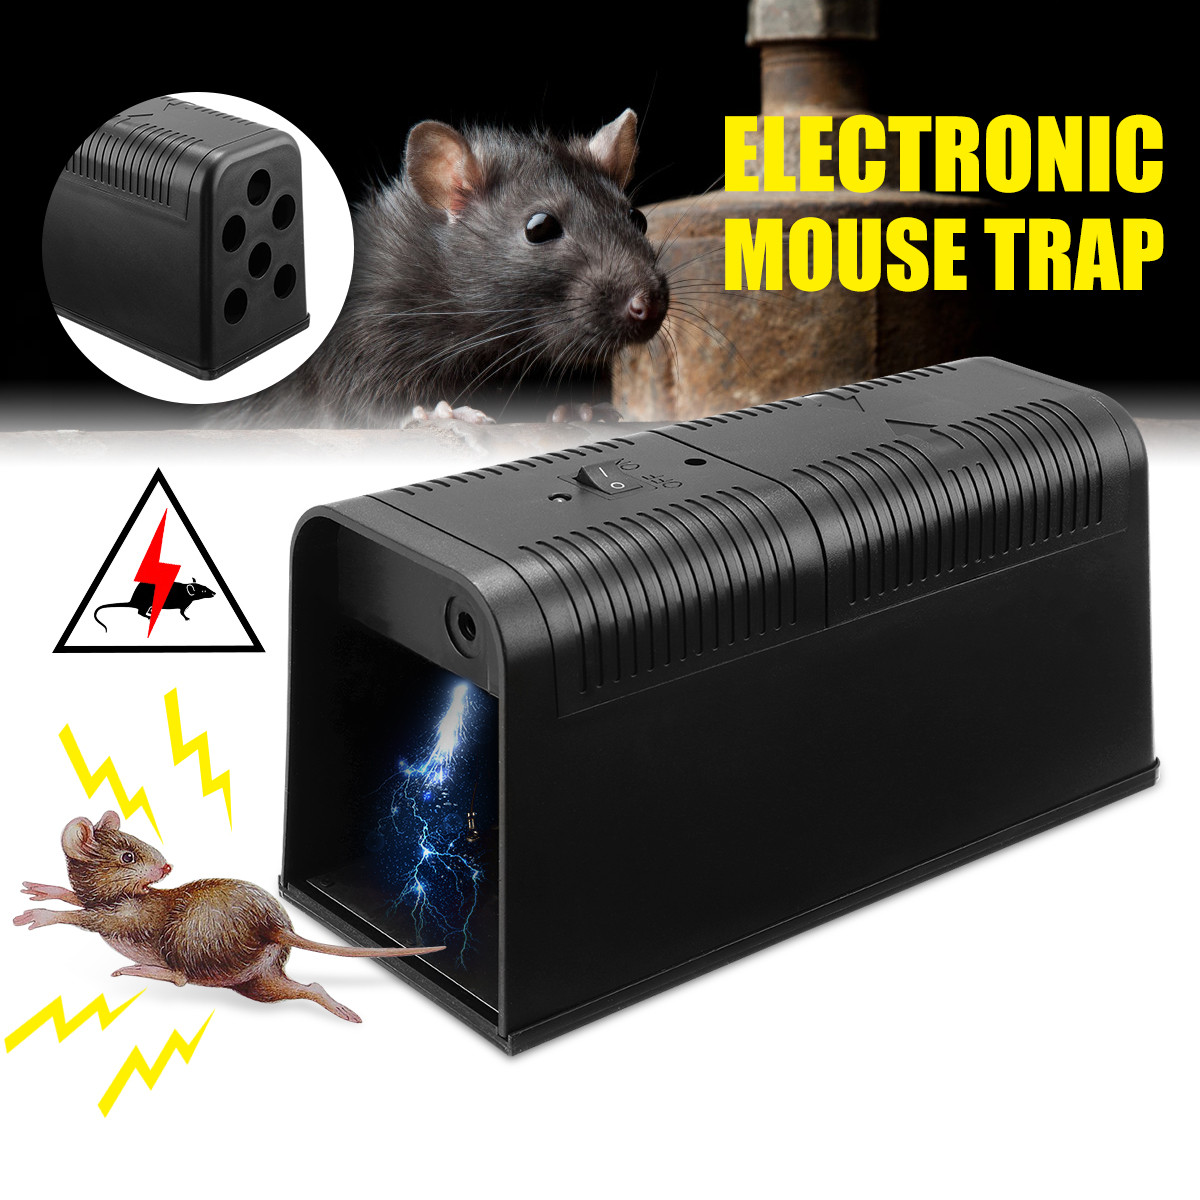 Electric Mouse Rat Trap Mouse Killer Electronic Rodent Mouse Zapper Trap Humane Rodent Mousetrap Device 235X102X113MM DC6VElectric Mouse Rat Trap Mouse Killer Electronic Rodent Mouse Zapper Trap Humane Rodent Mousetrap Device 235X102X113MM DC6V